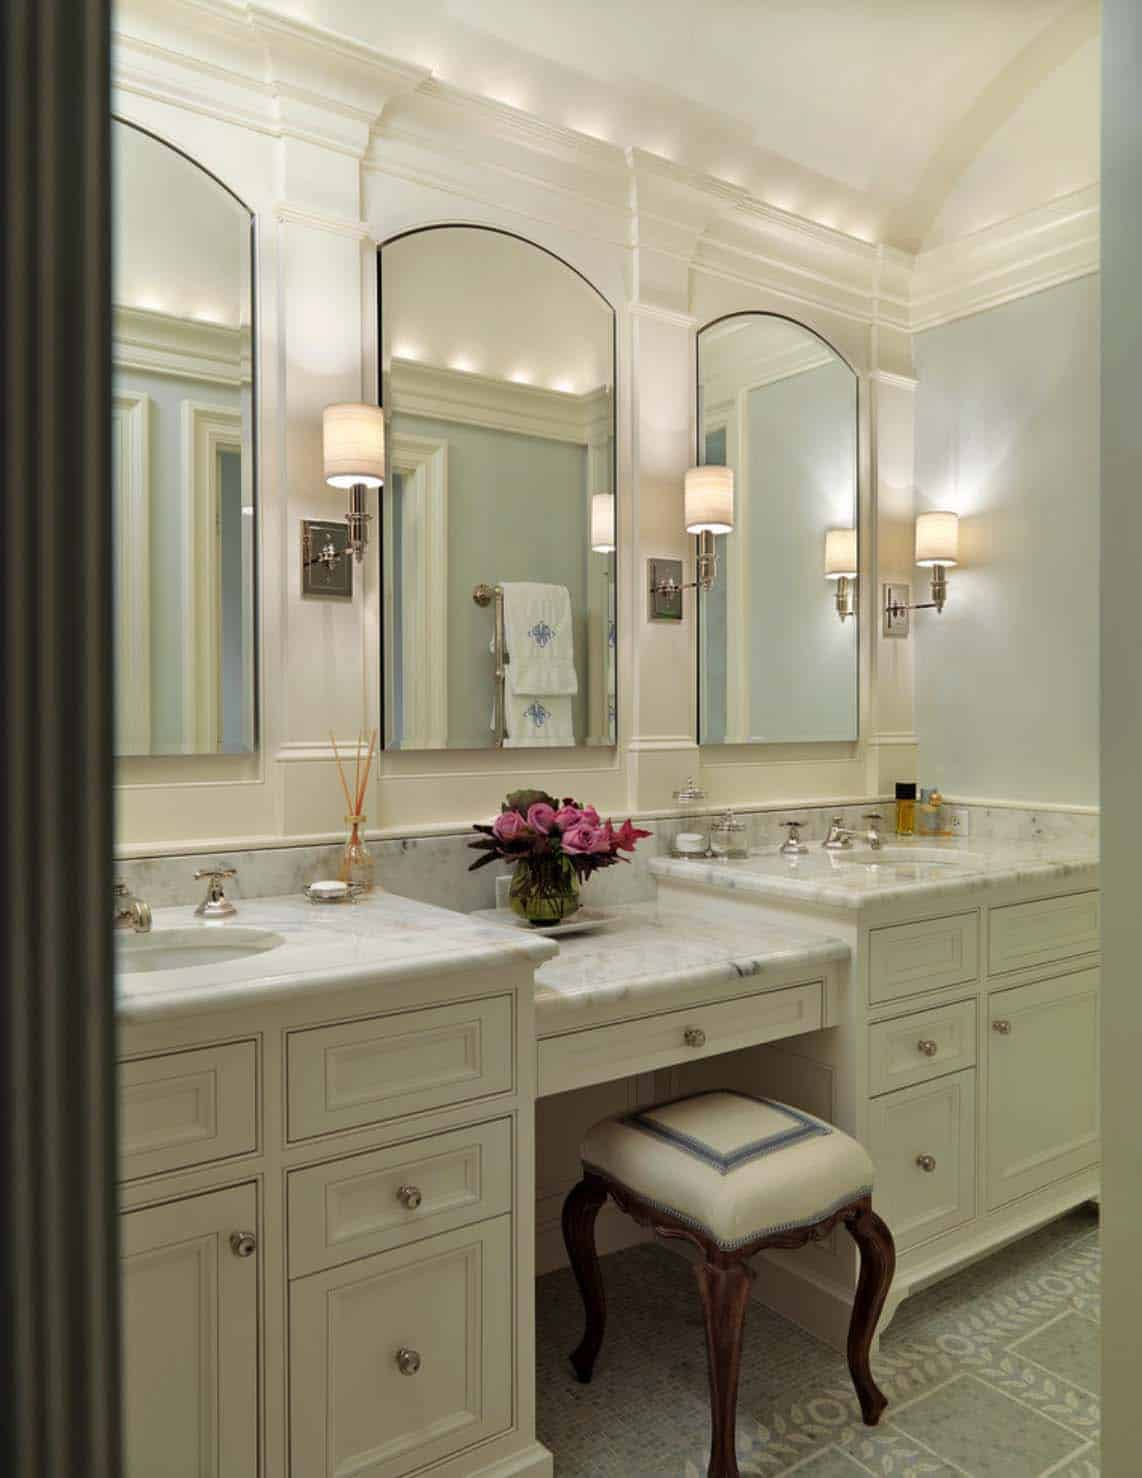 Traditional Bathroom Design Ideas-45-1 Kindesign